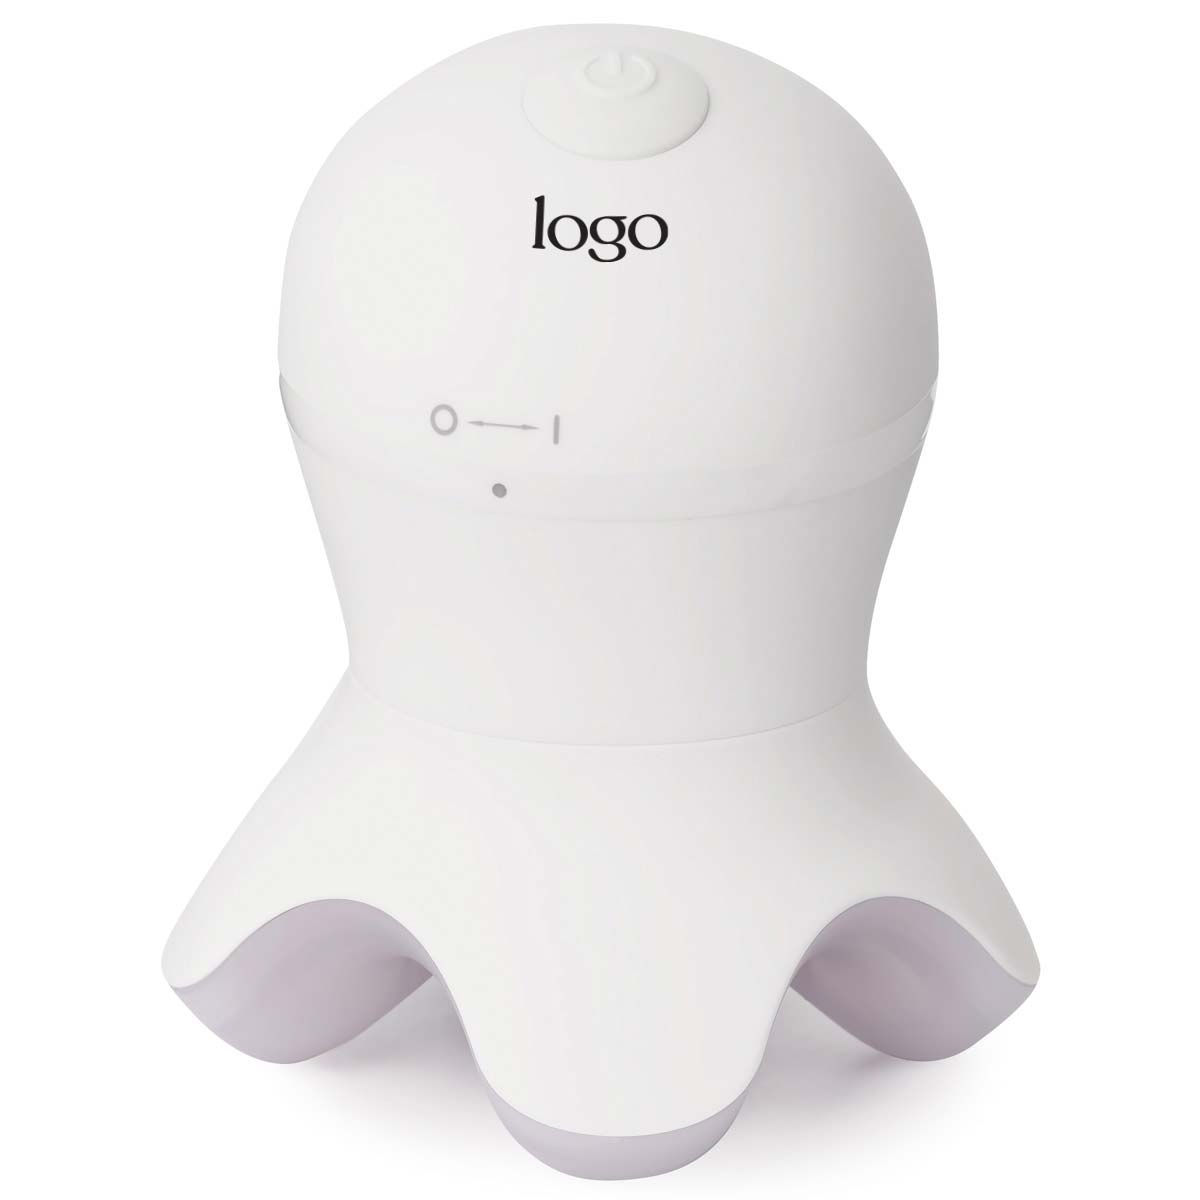 302319 shiatsu massage device one color imprint only one location